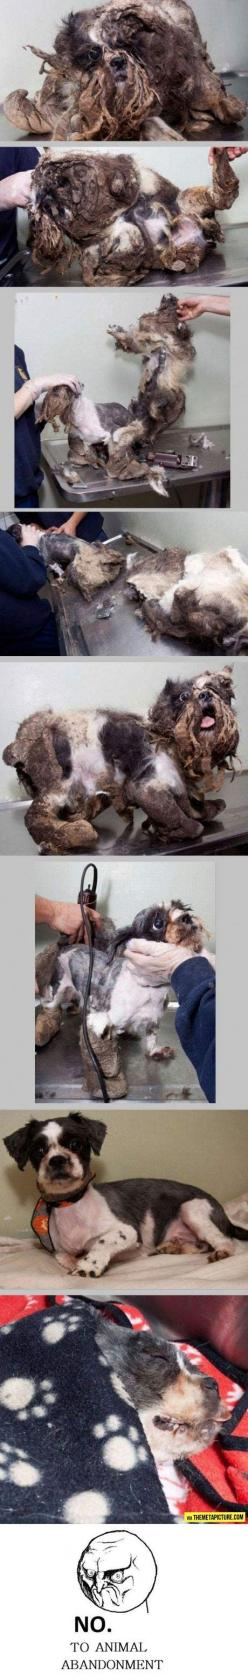 Rescued and saved…: Doggie ́S, Animal Rights, Animal Cruelty, Pet, Animal Abuse, First Haircut, Animal Abandonment, Poor Baby, So Sad